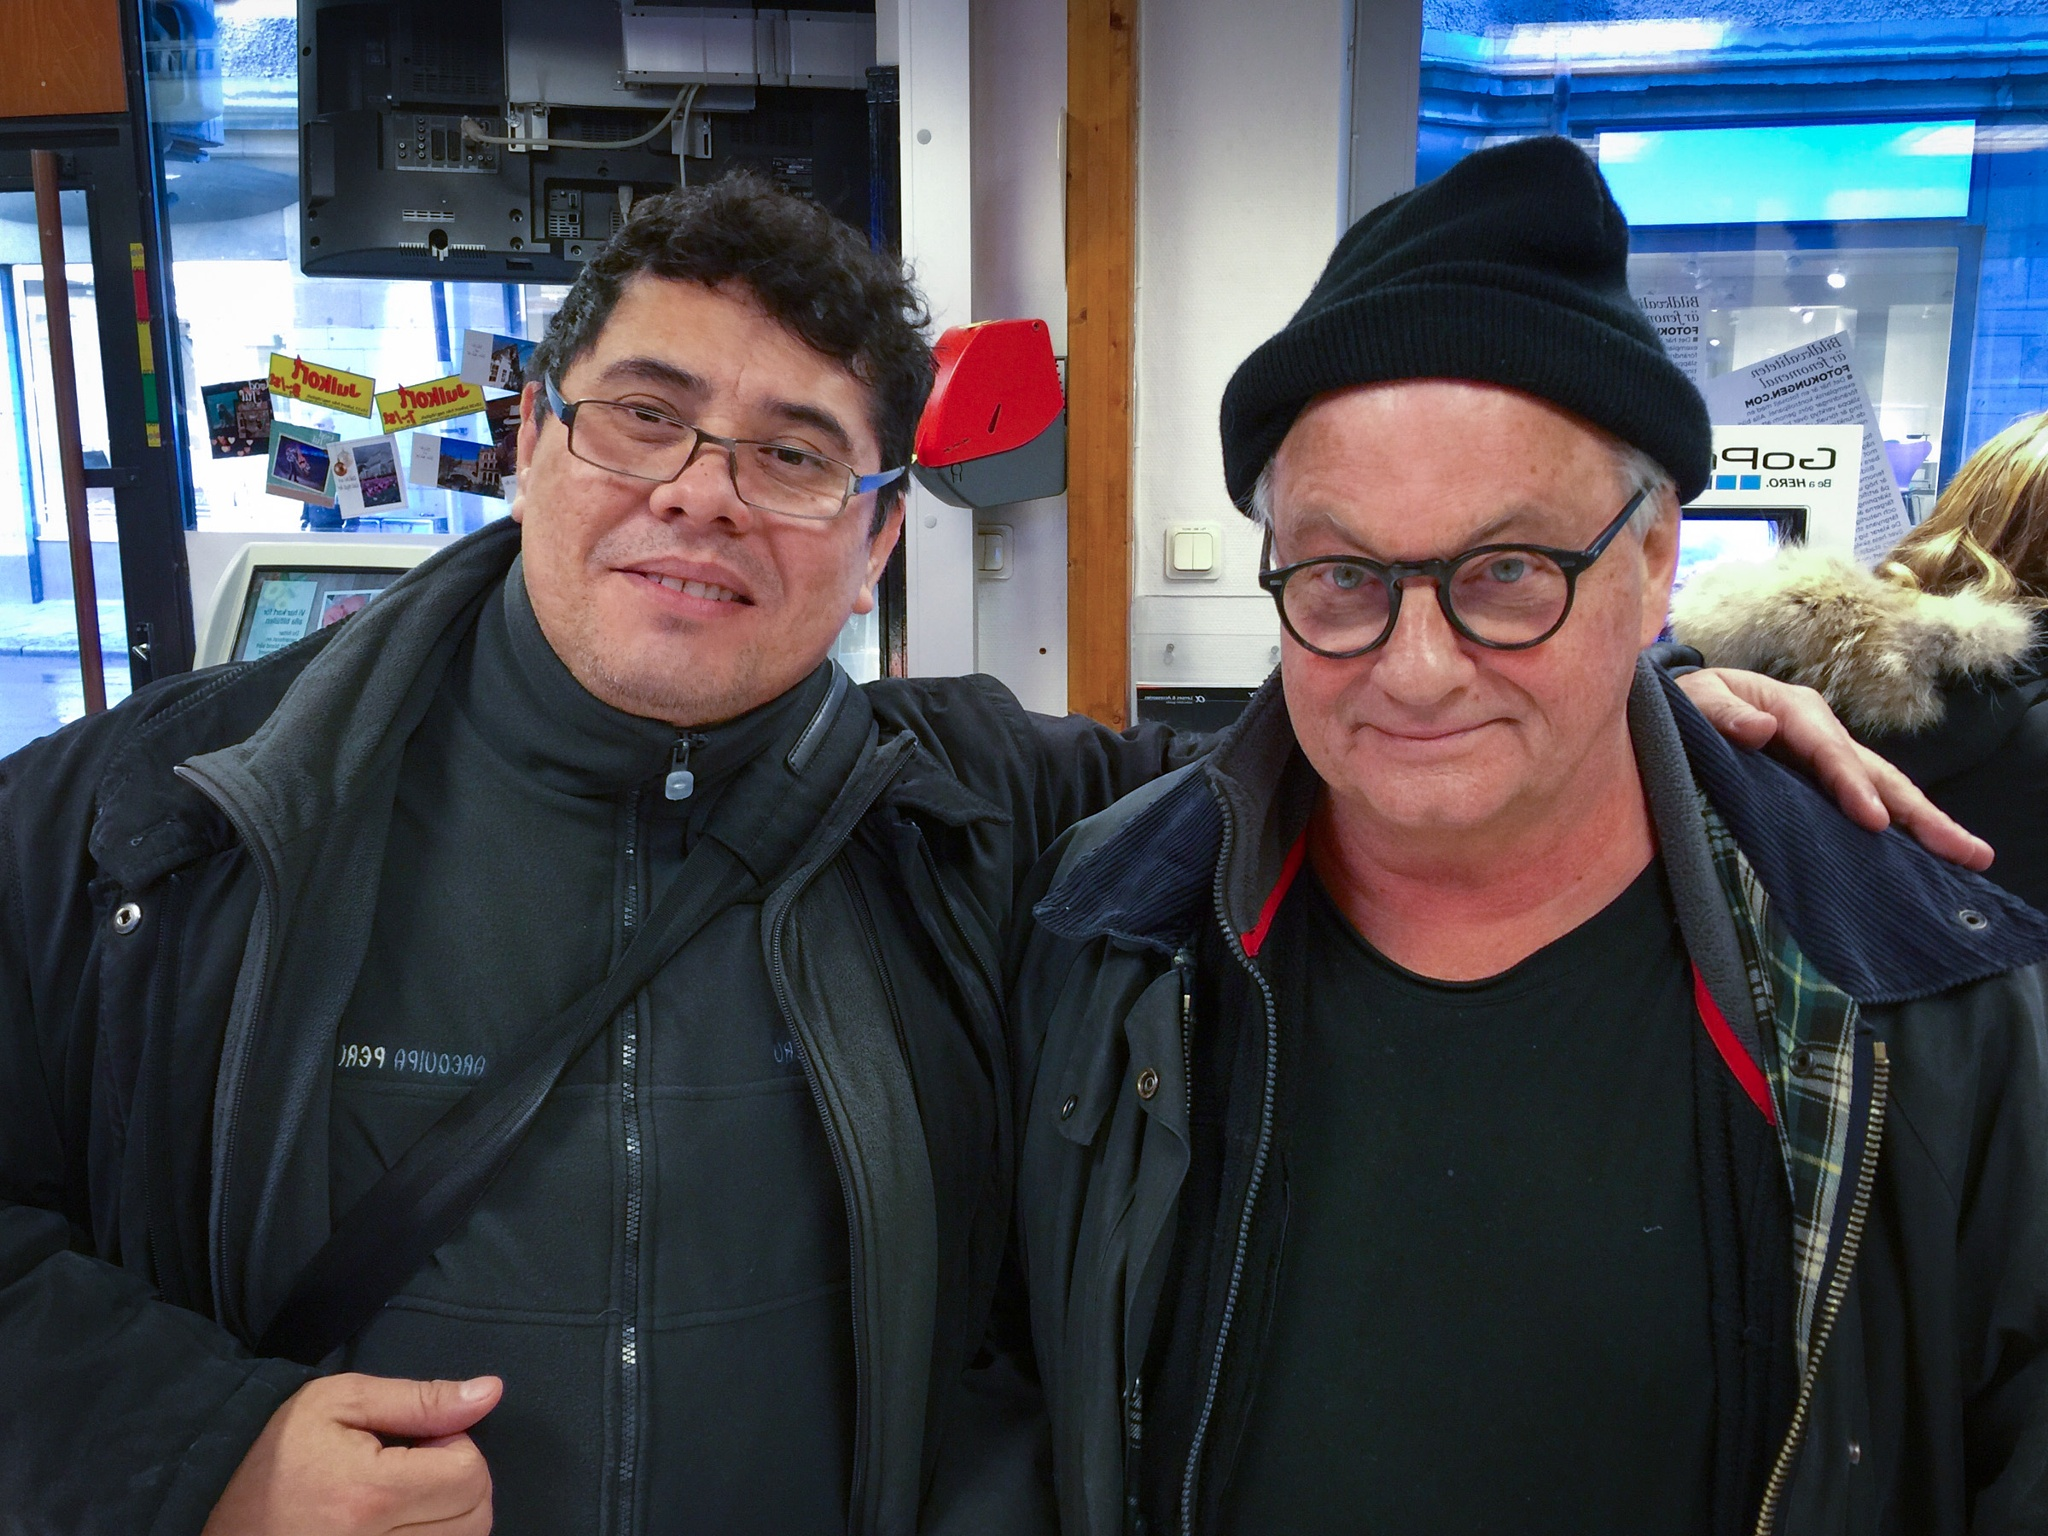 Prof Anders Petersen, Photography World Master, and me by Omar Pinto Diaz